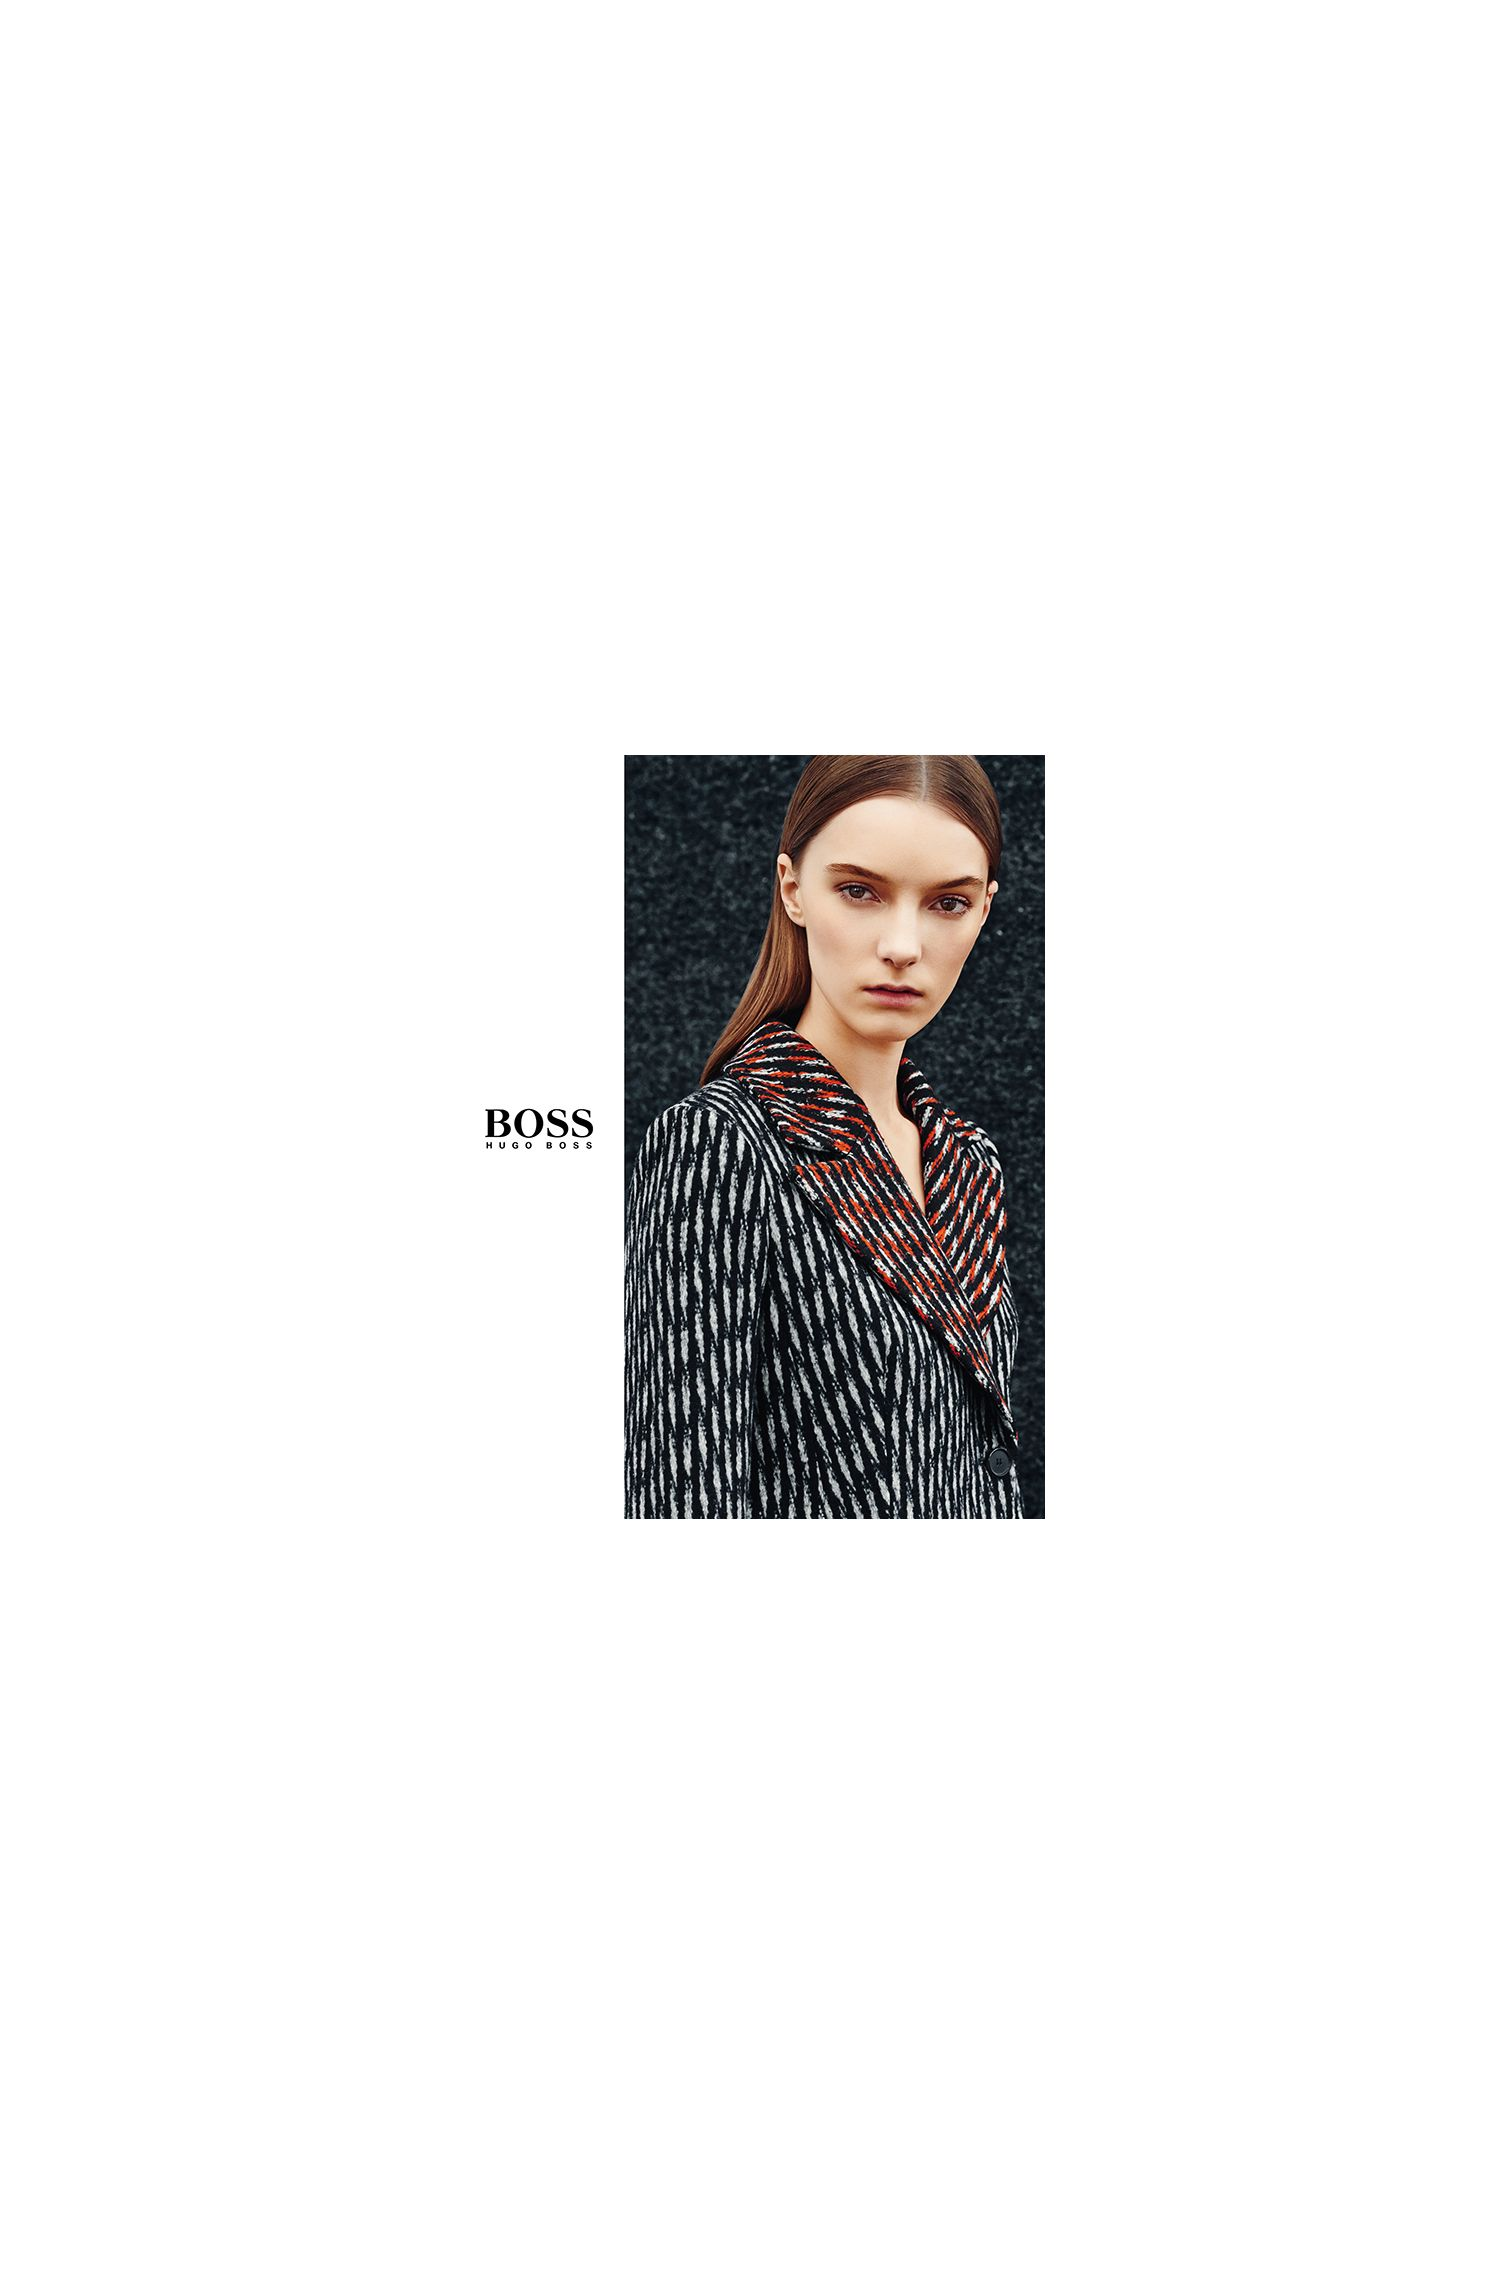 BOSS womenswear booklet